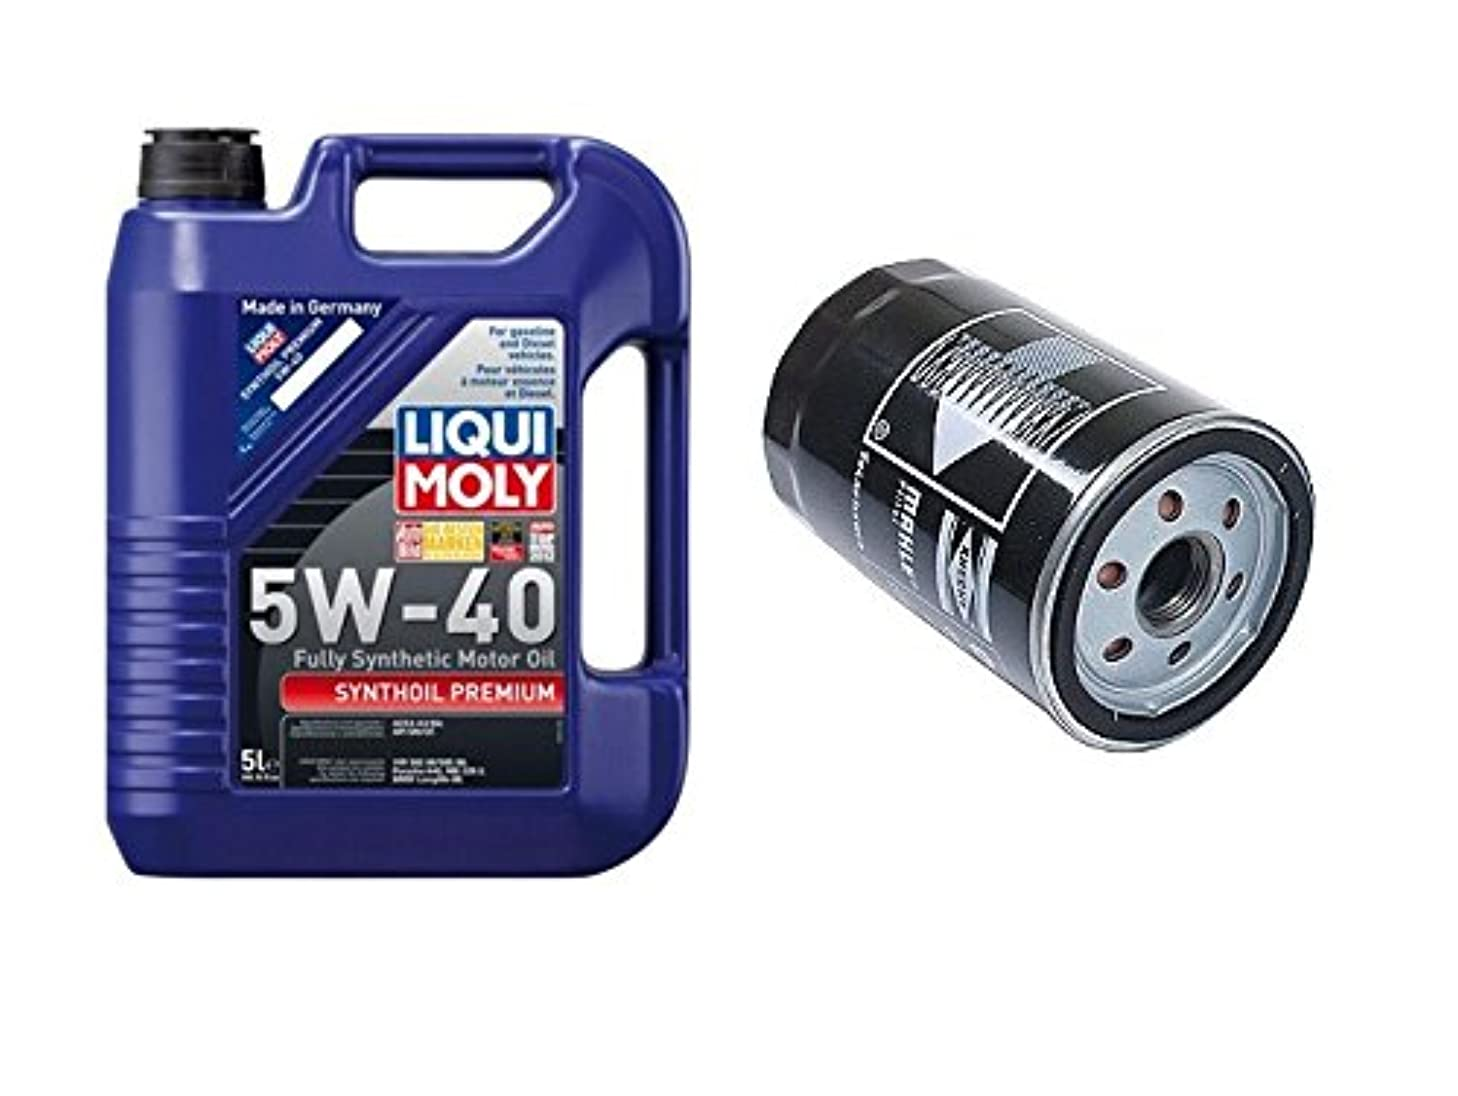 Liqui Moly 2041 Premium 5W-40 Synthetic Motor Oil - 5 Liter Jug + 1 Engine Oil Filter Mahle 06A115561BML / 06A115561B / OC264 Audi 90 100 200 A6 Volkswagen Beetle Cabrio Jetta S4 S6 TT